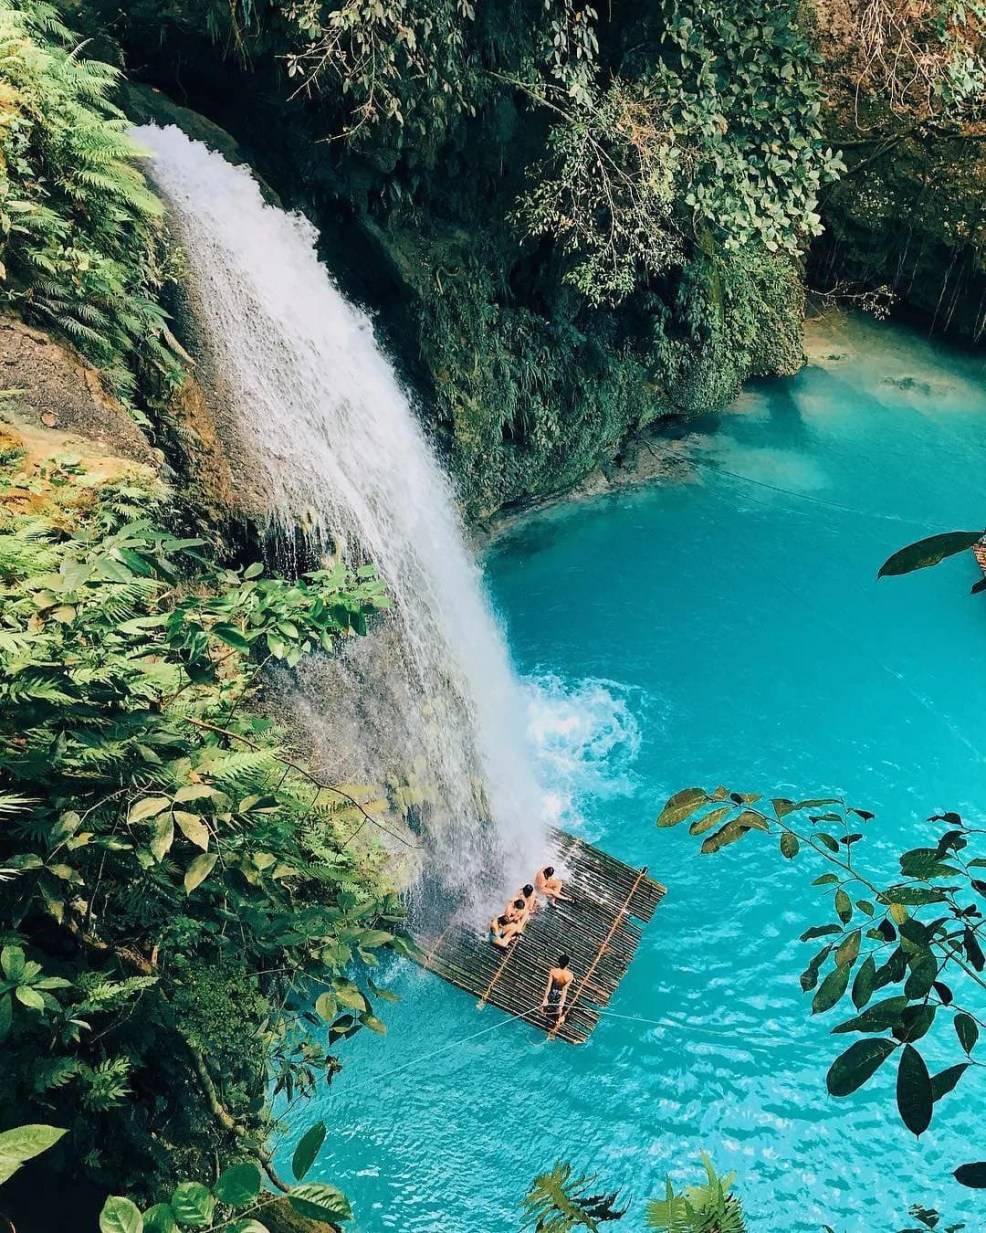 things to do in moalboal, what to do in moalboal at night, moalboal cebu itinerary, moalboal philippines, where to stay in moalboal,moalboal tourism,basdaku moalboal,things to see in moalboal cebu, pescadores island, Lambug Beach